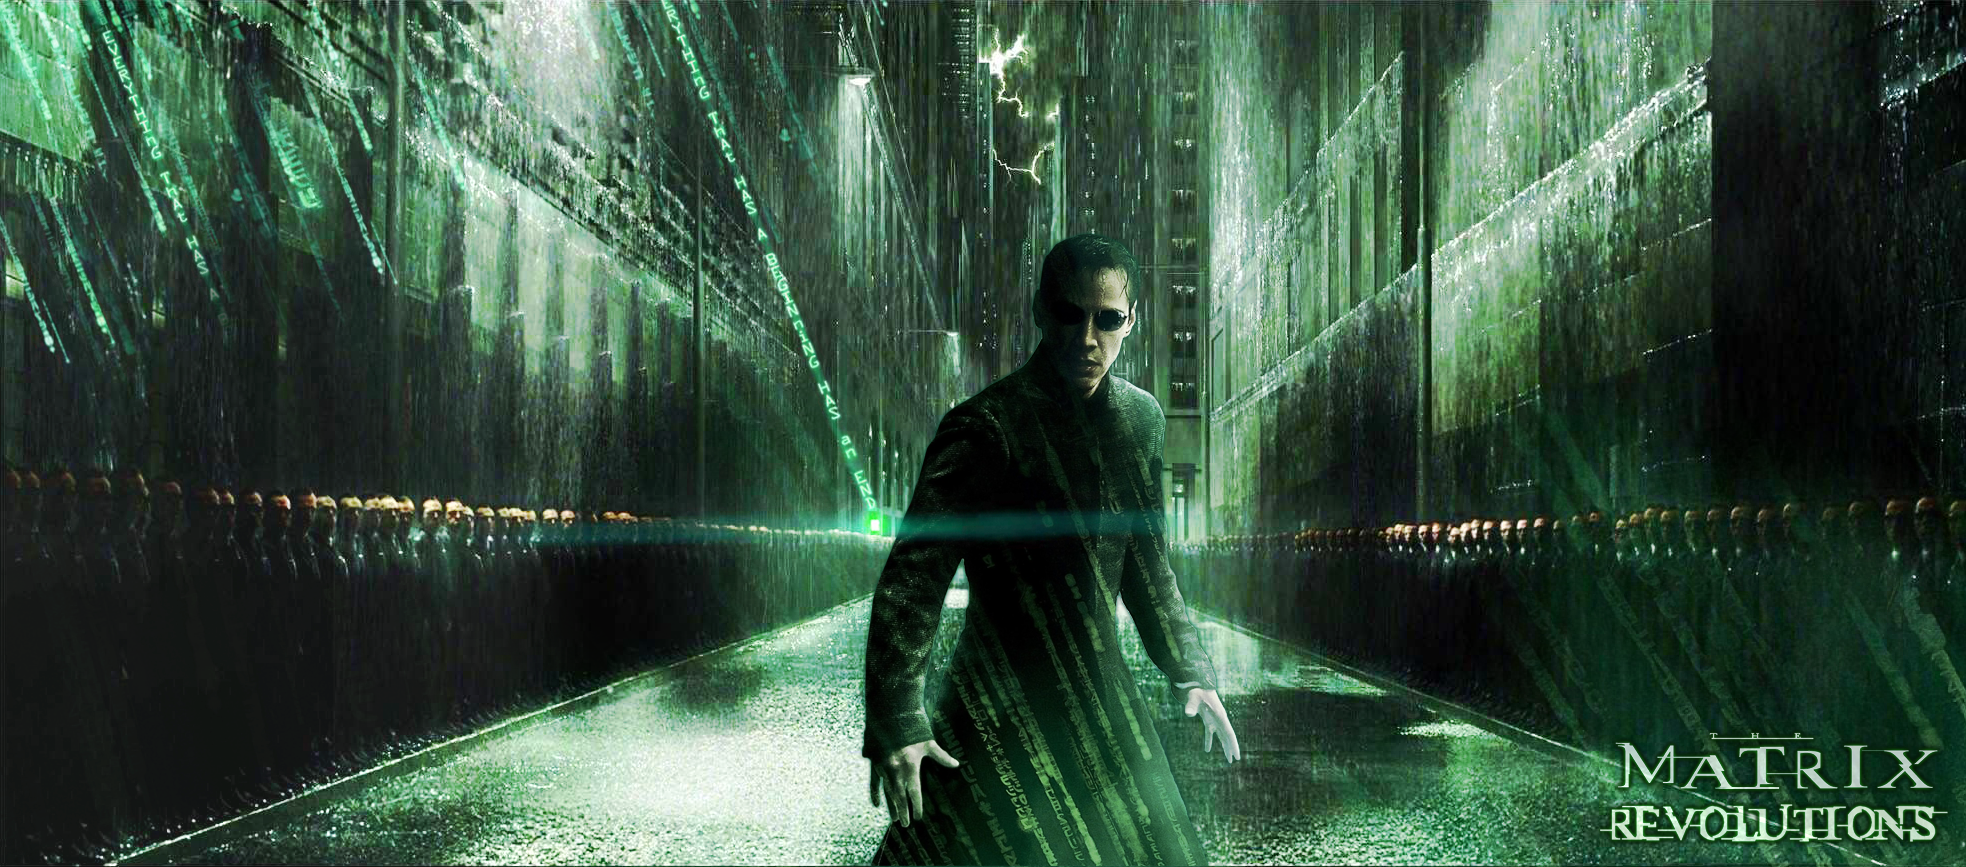 the matrix revolutions Wallpaper and Background Image ...